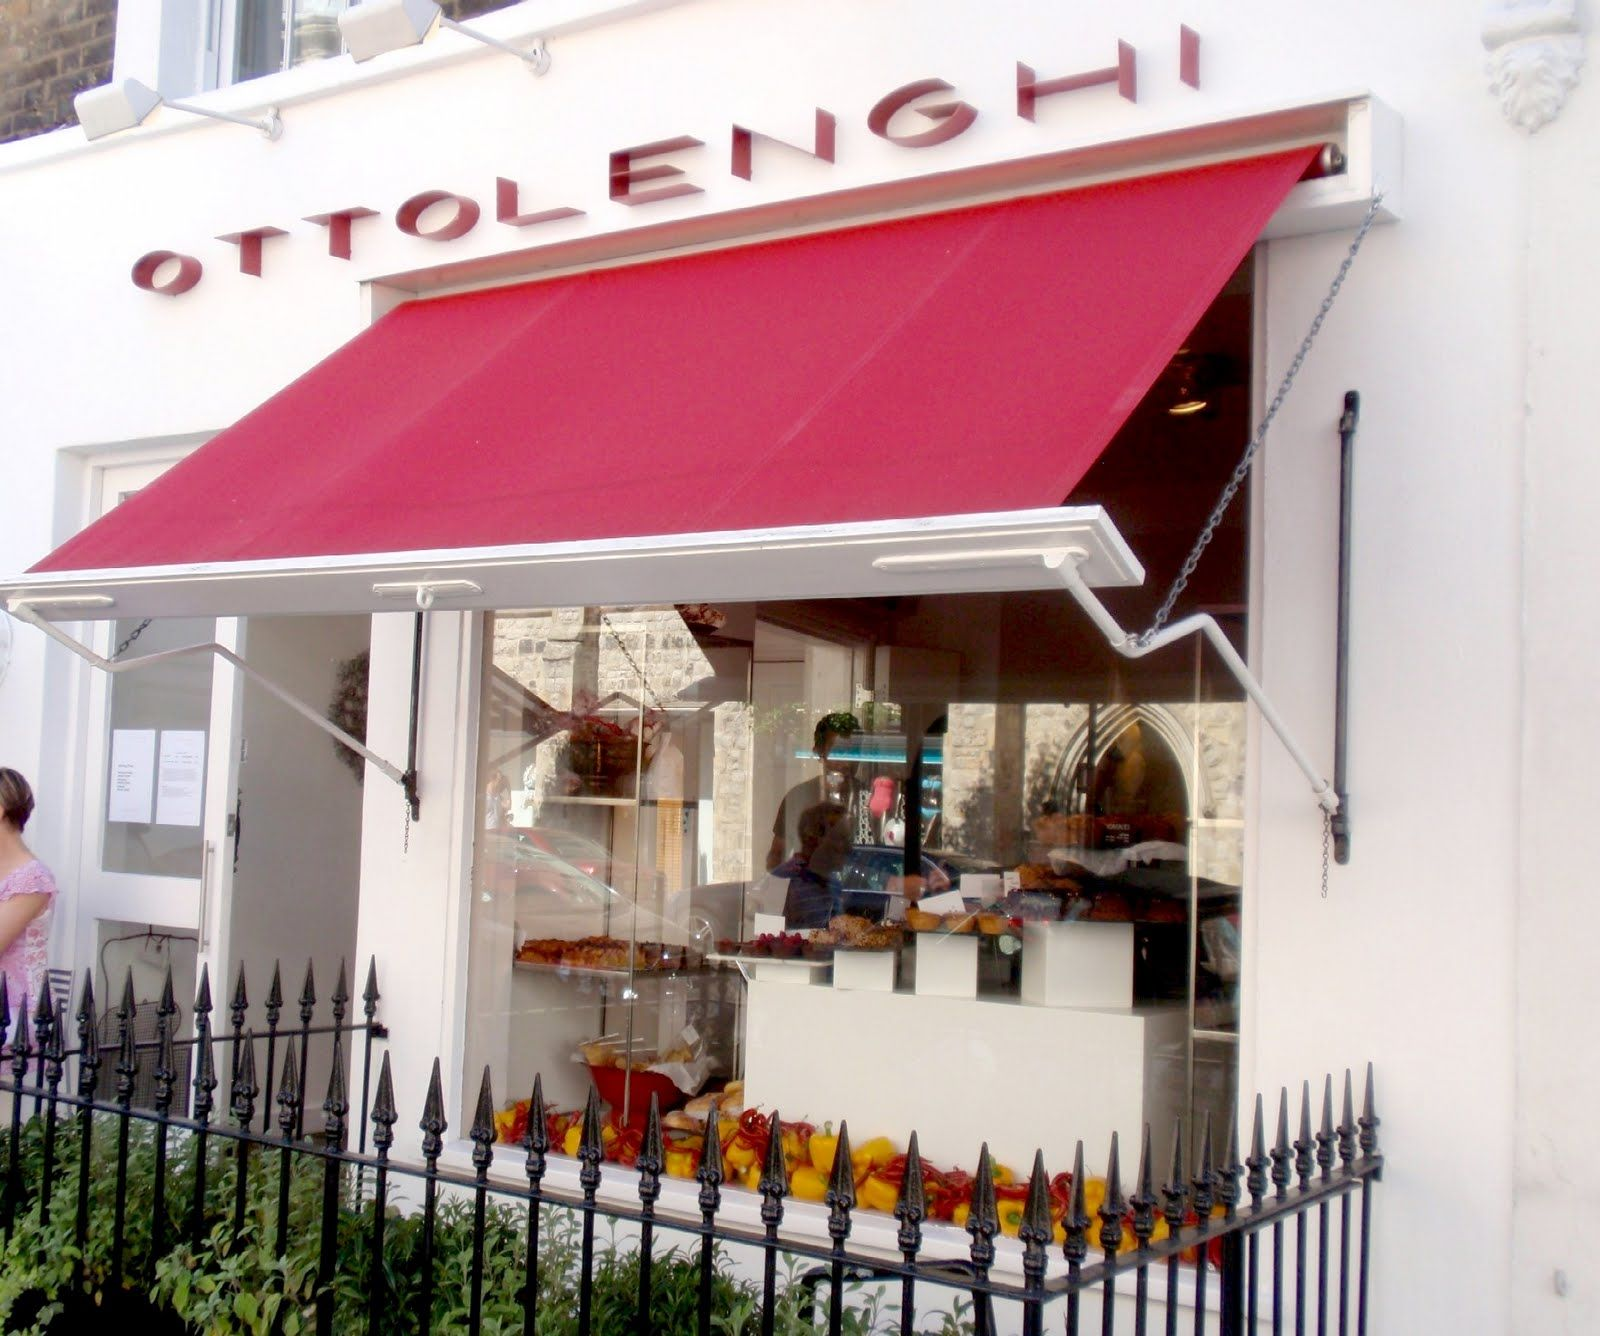 My notting hill blog - London Life Notting Hill Foodie Favourites Taking A Cue From Msh S Blimey Blog I Decided To Draft A List Of All My Notting Hill Foodie Favs Local Haunts